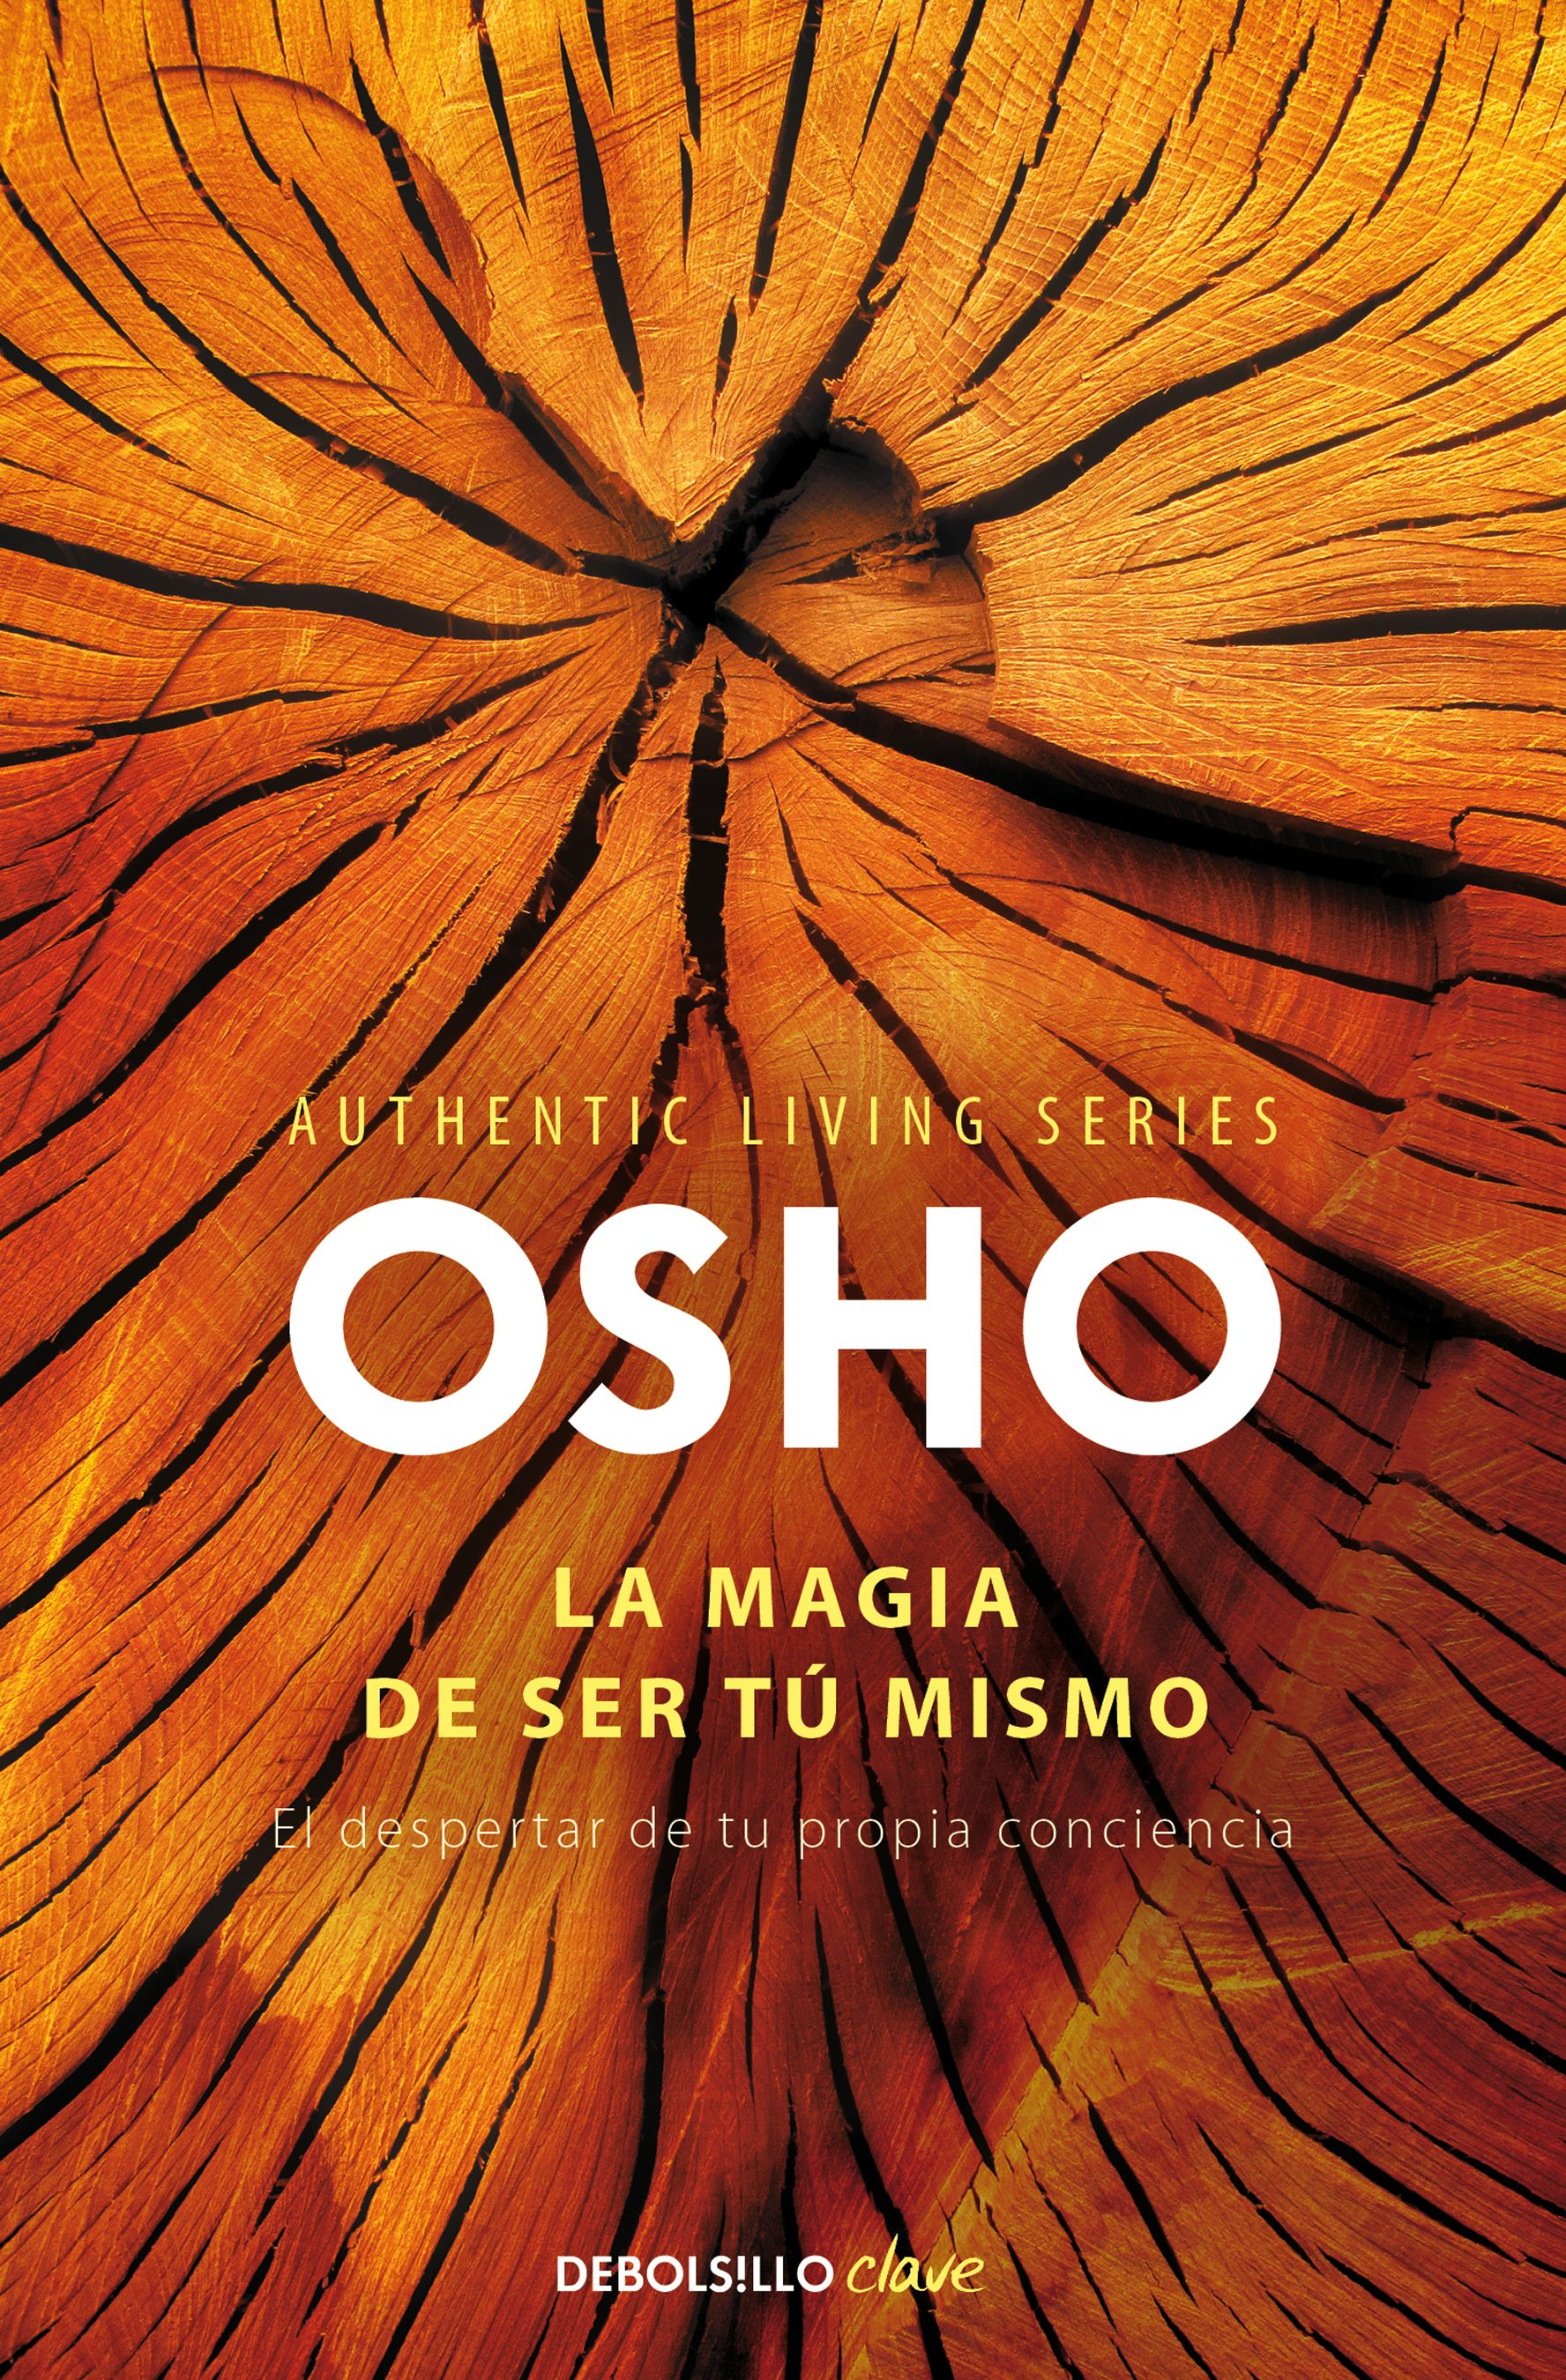 Audiolibros De Autoayuda Authentic Living Osho Portadas Libros Pinterest